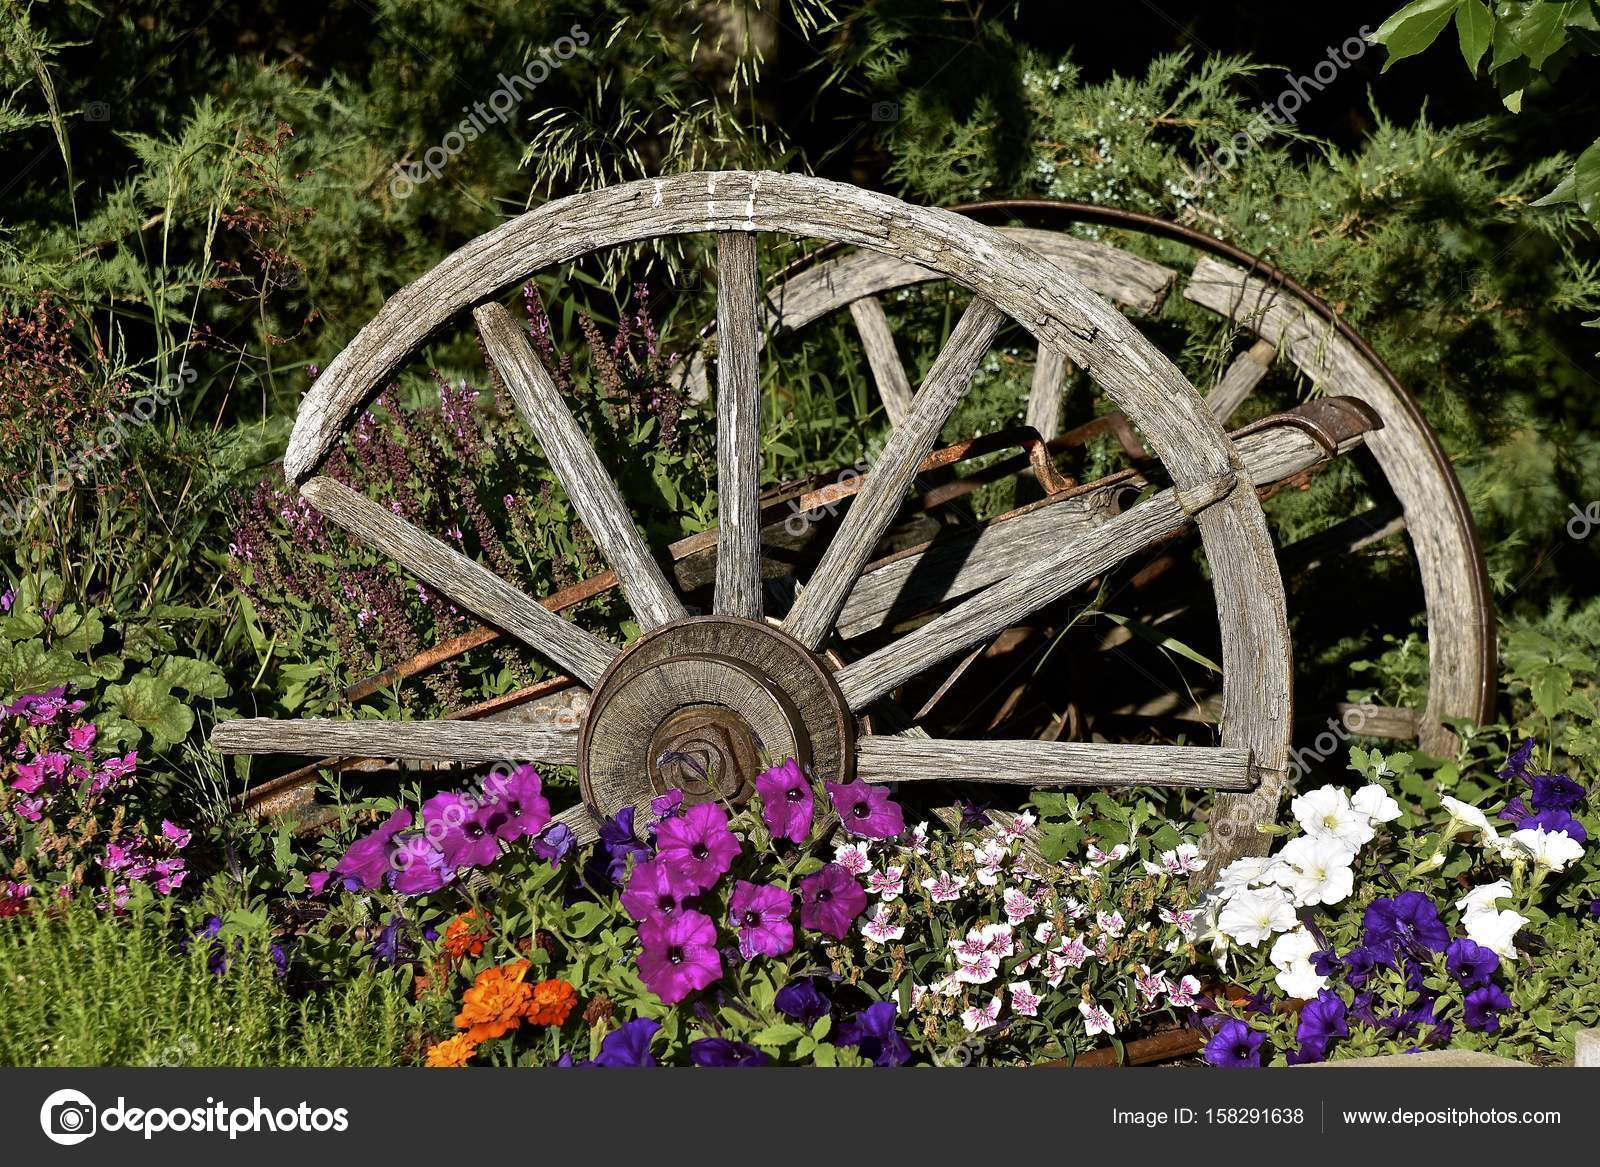 Old Wagon Wheels In A Flower Garden Stock Photo Image By C Fiskness 158291638